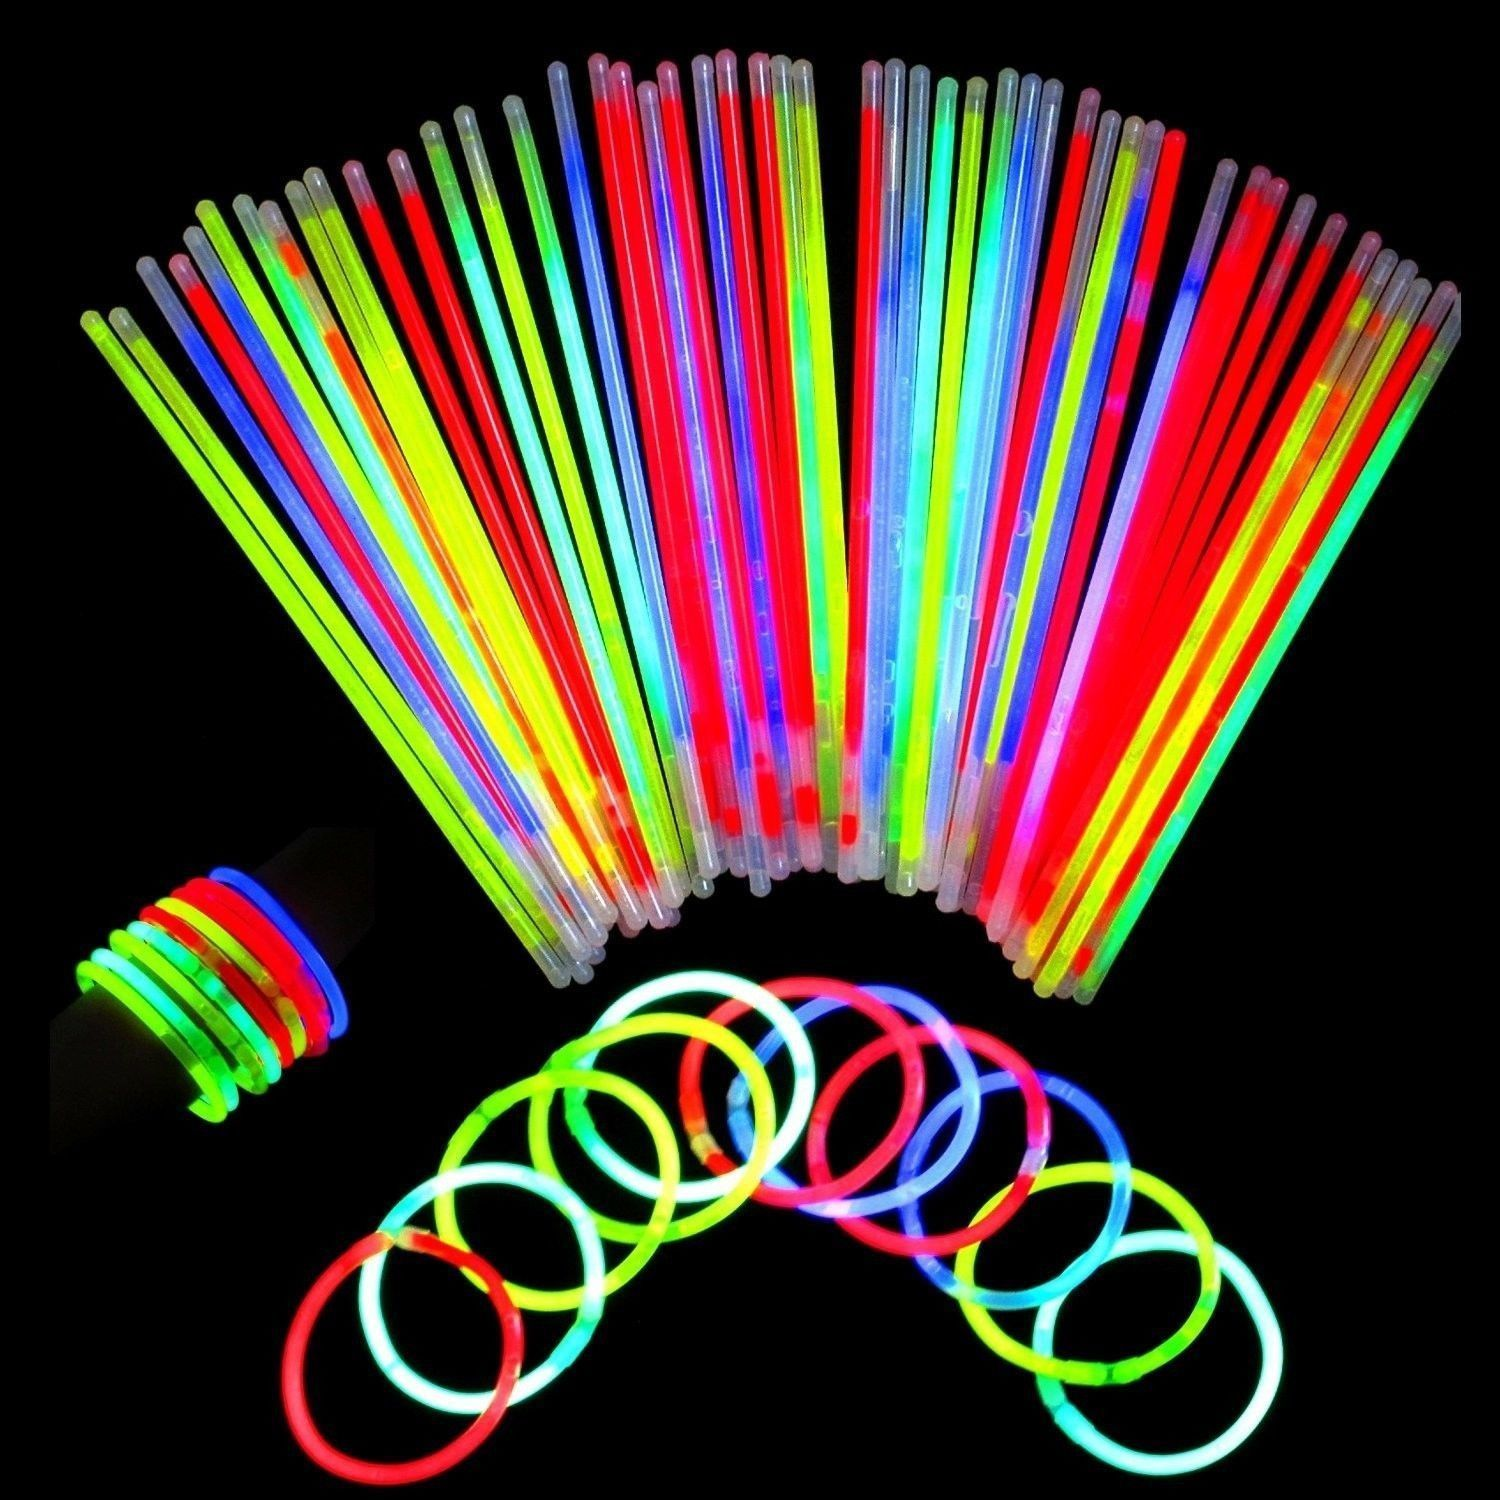 Neon Light Up Glow Sticks Bright Glo Lite Stix 8'' Bracelet Necklace Favors 2...